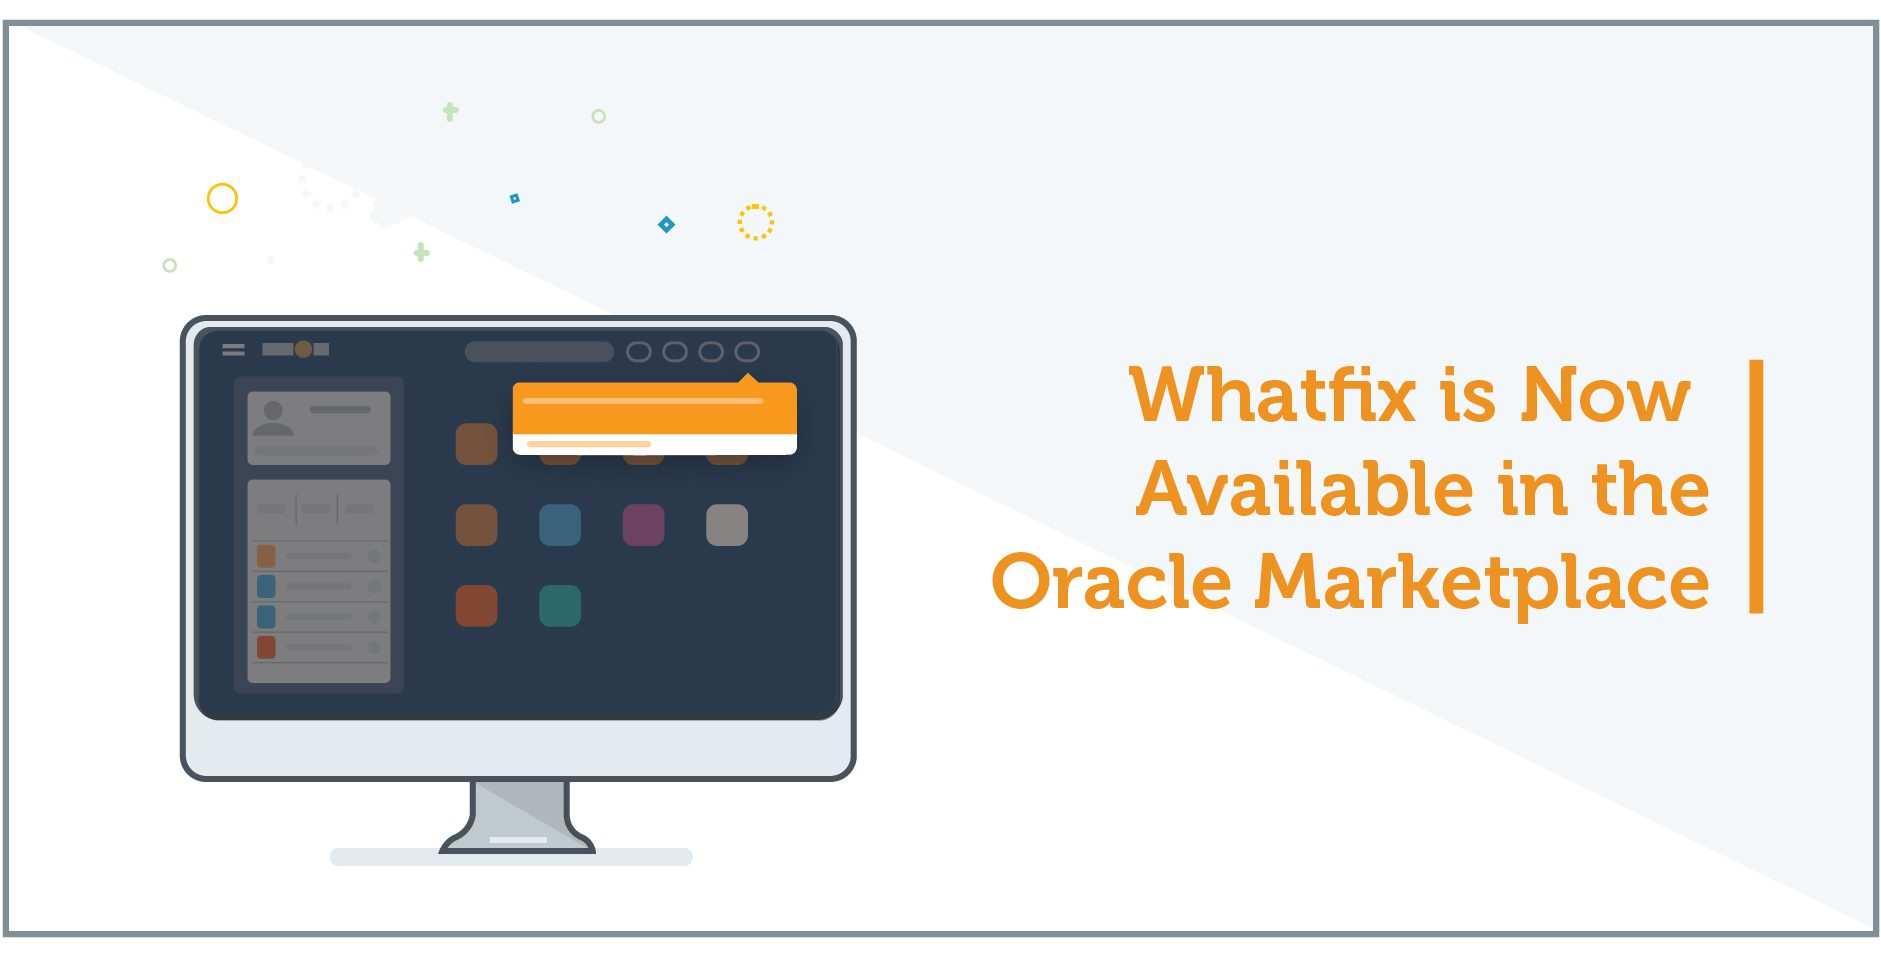 Whatfix is Now Available in the Oracle Cloud Marketplace